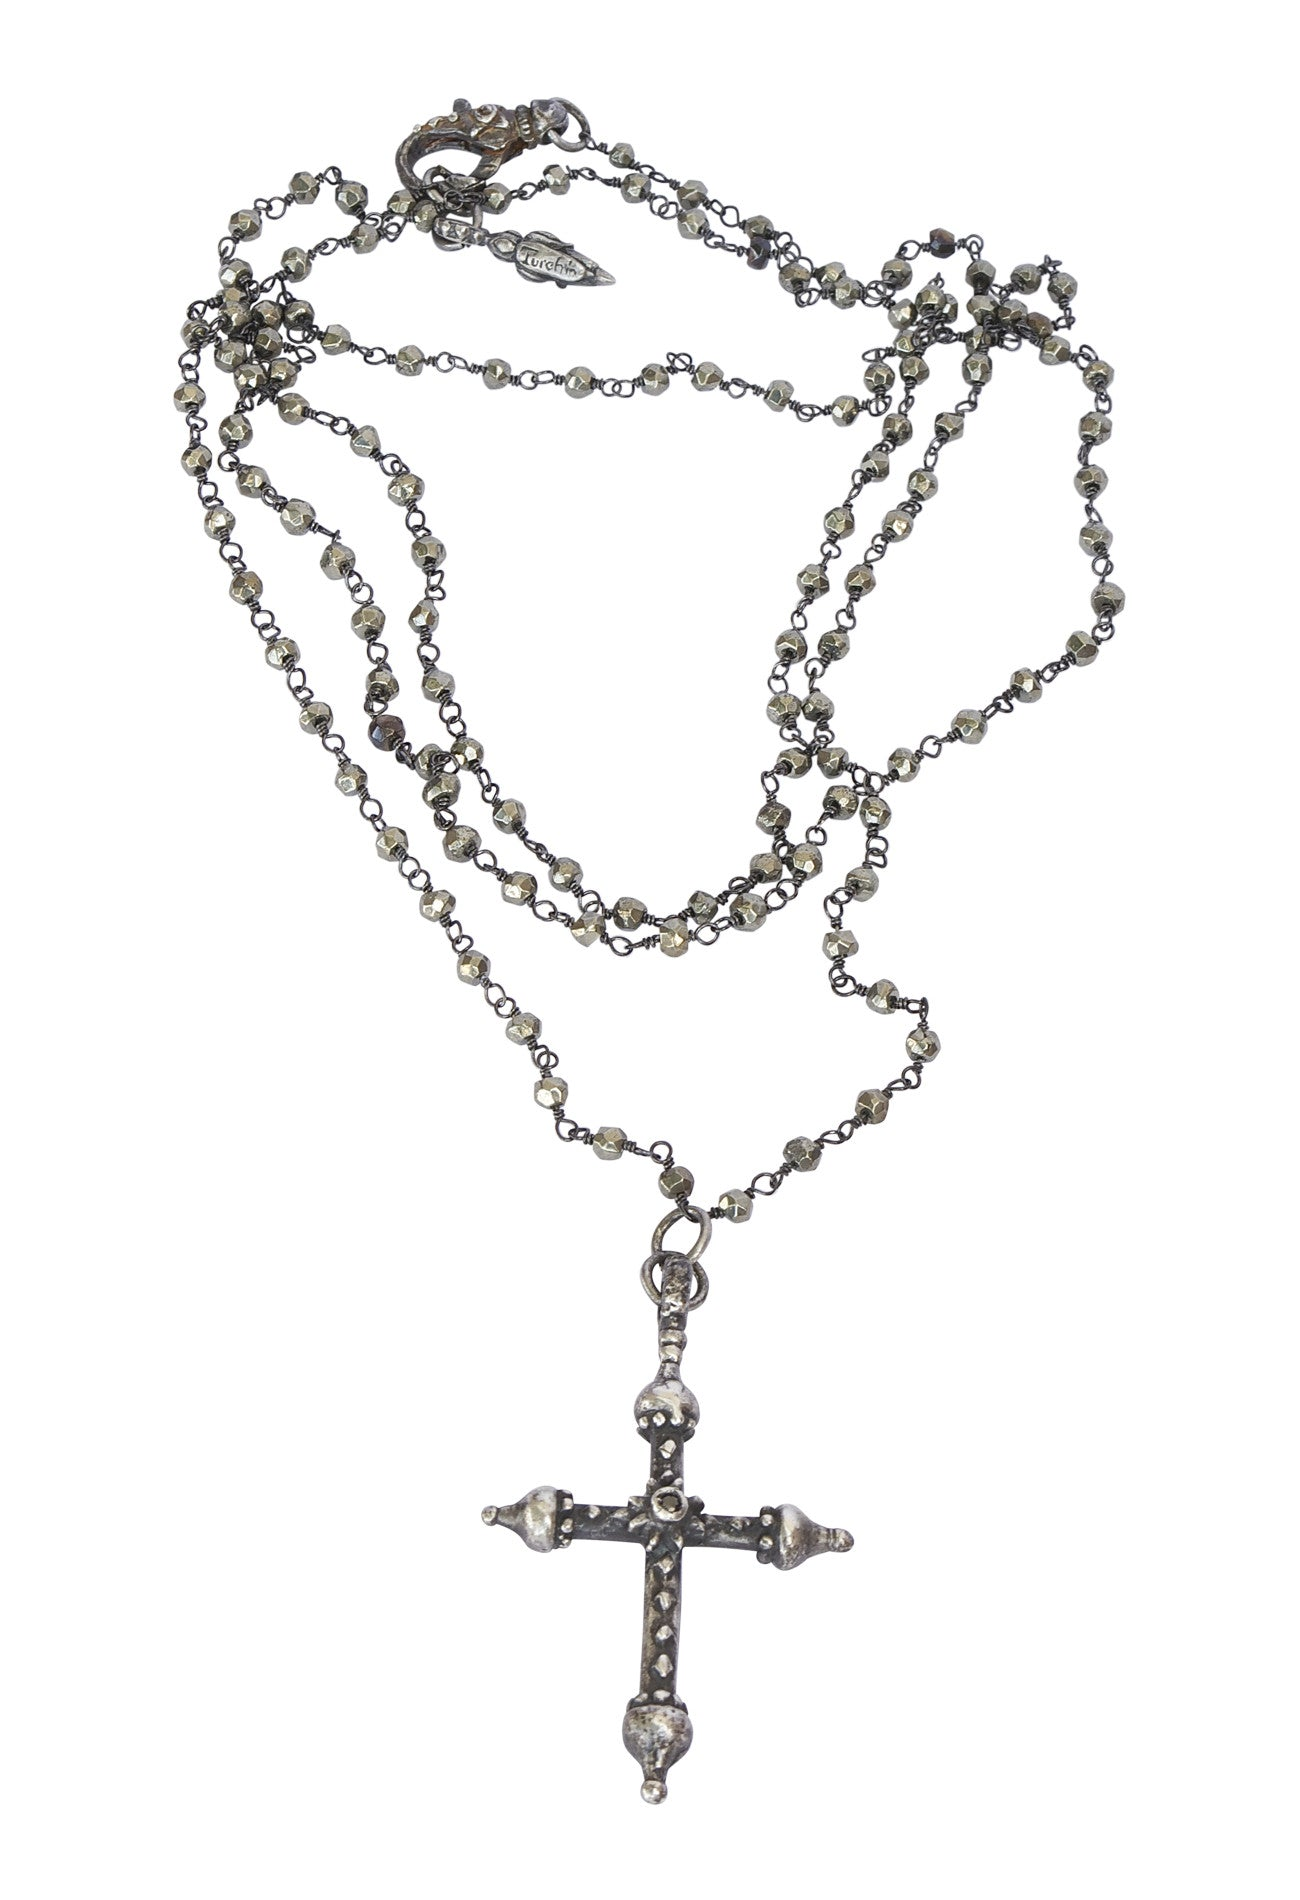 Black Sapphire and Pyrite Artistic Cross Necklace